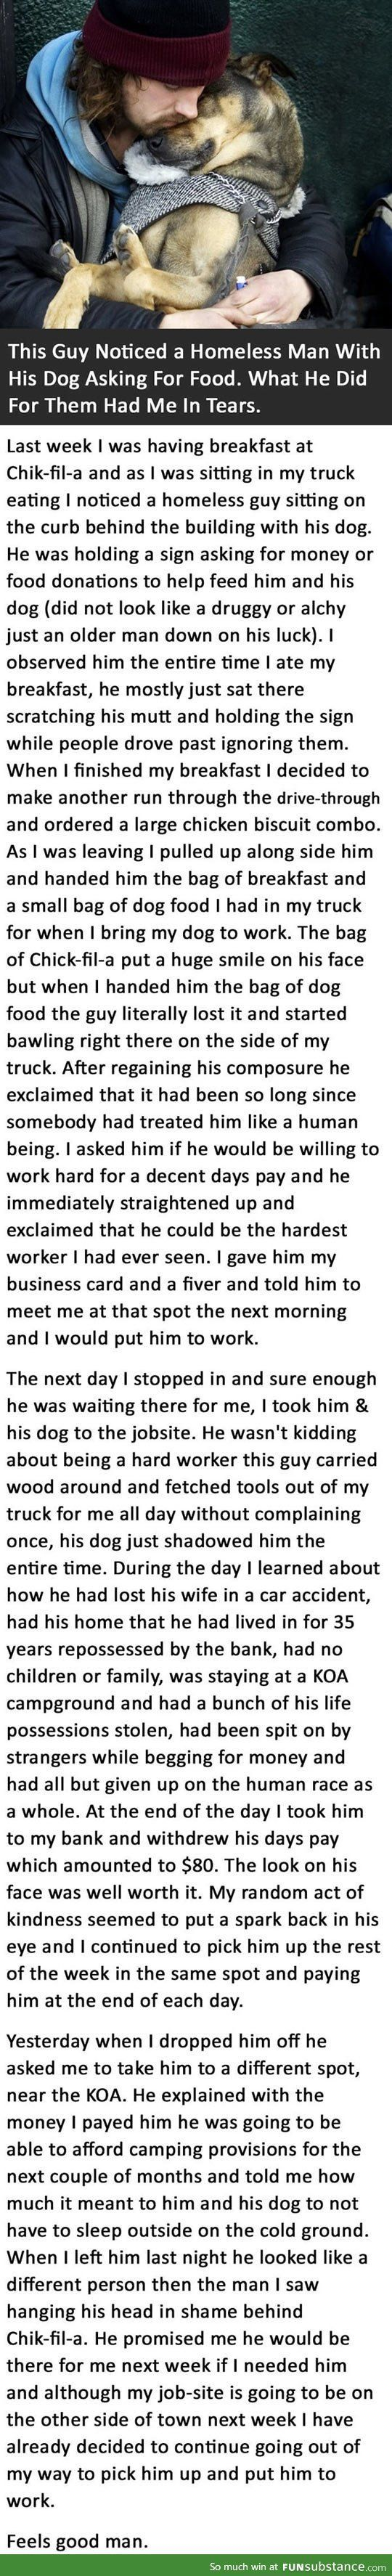 Guy notices a homeless man with his dog